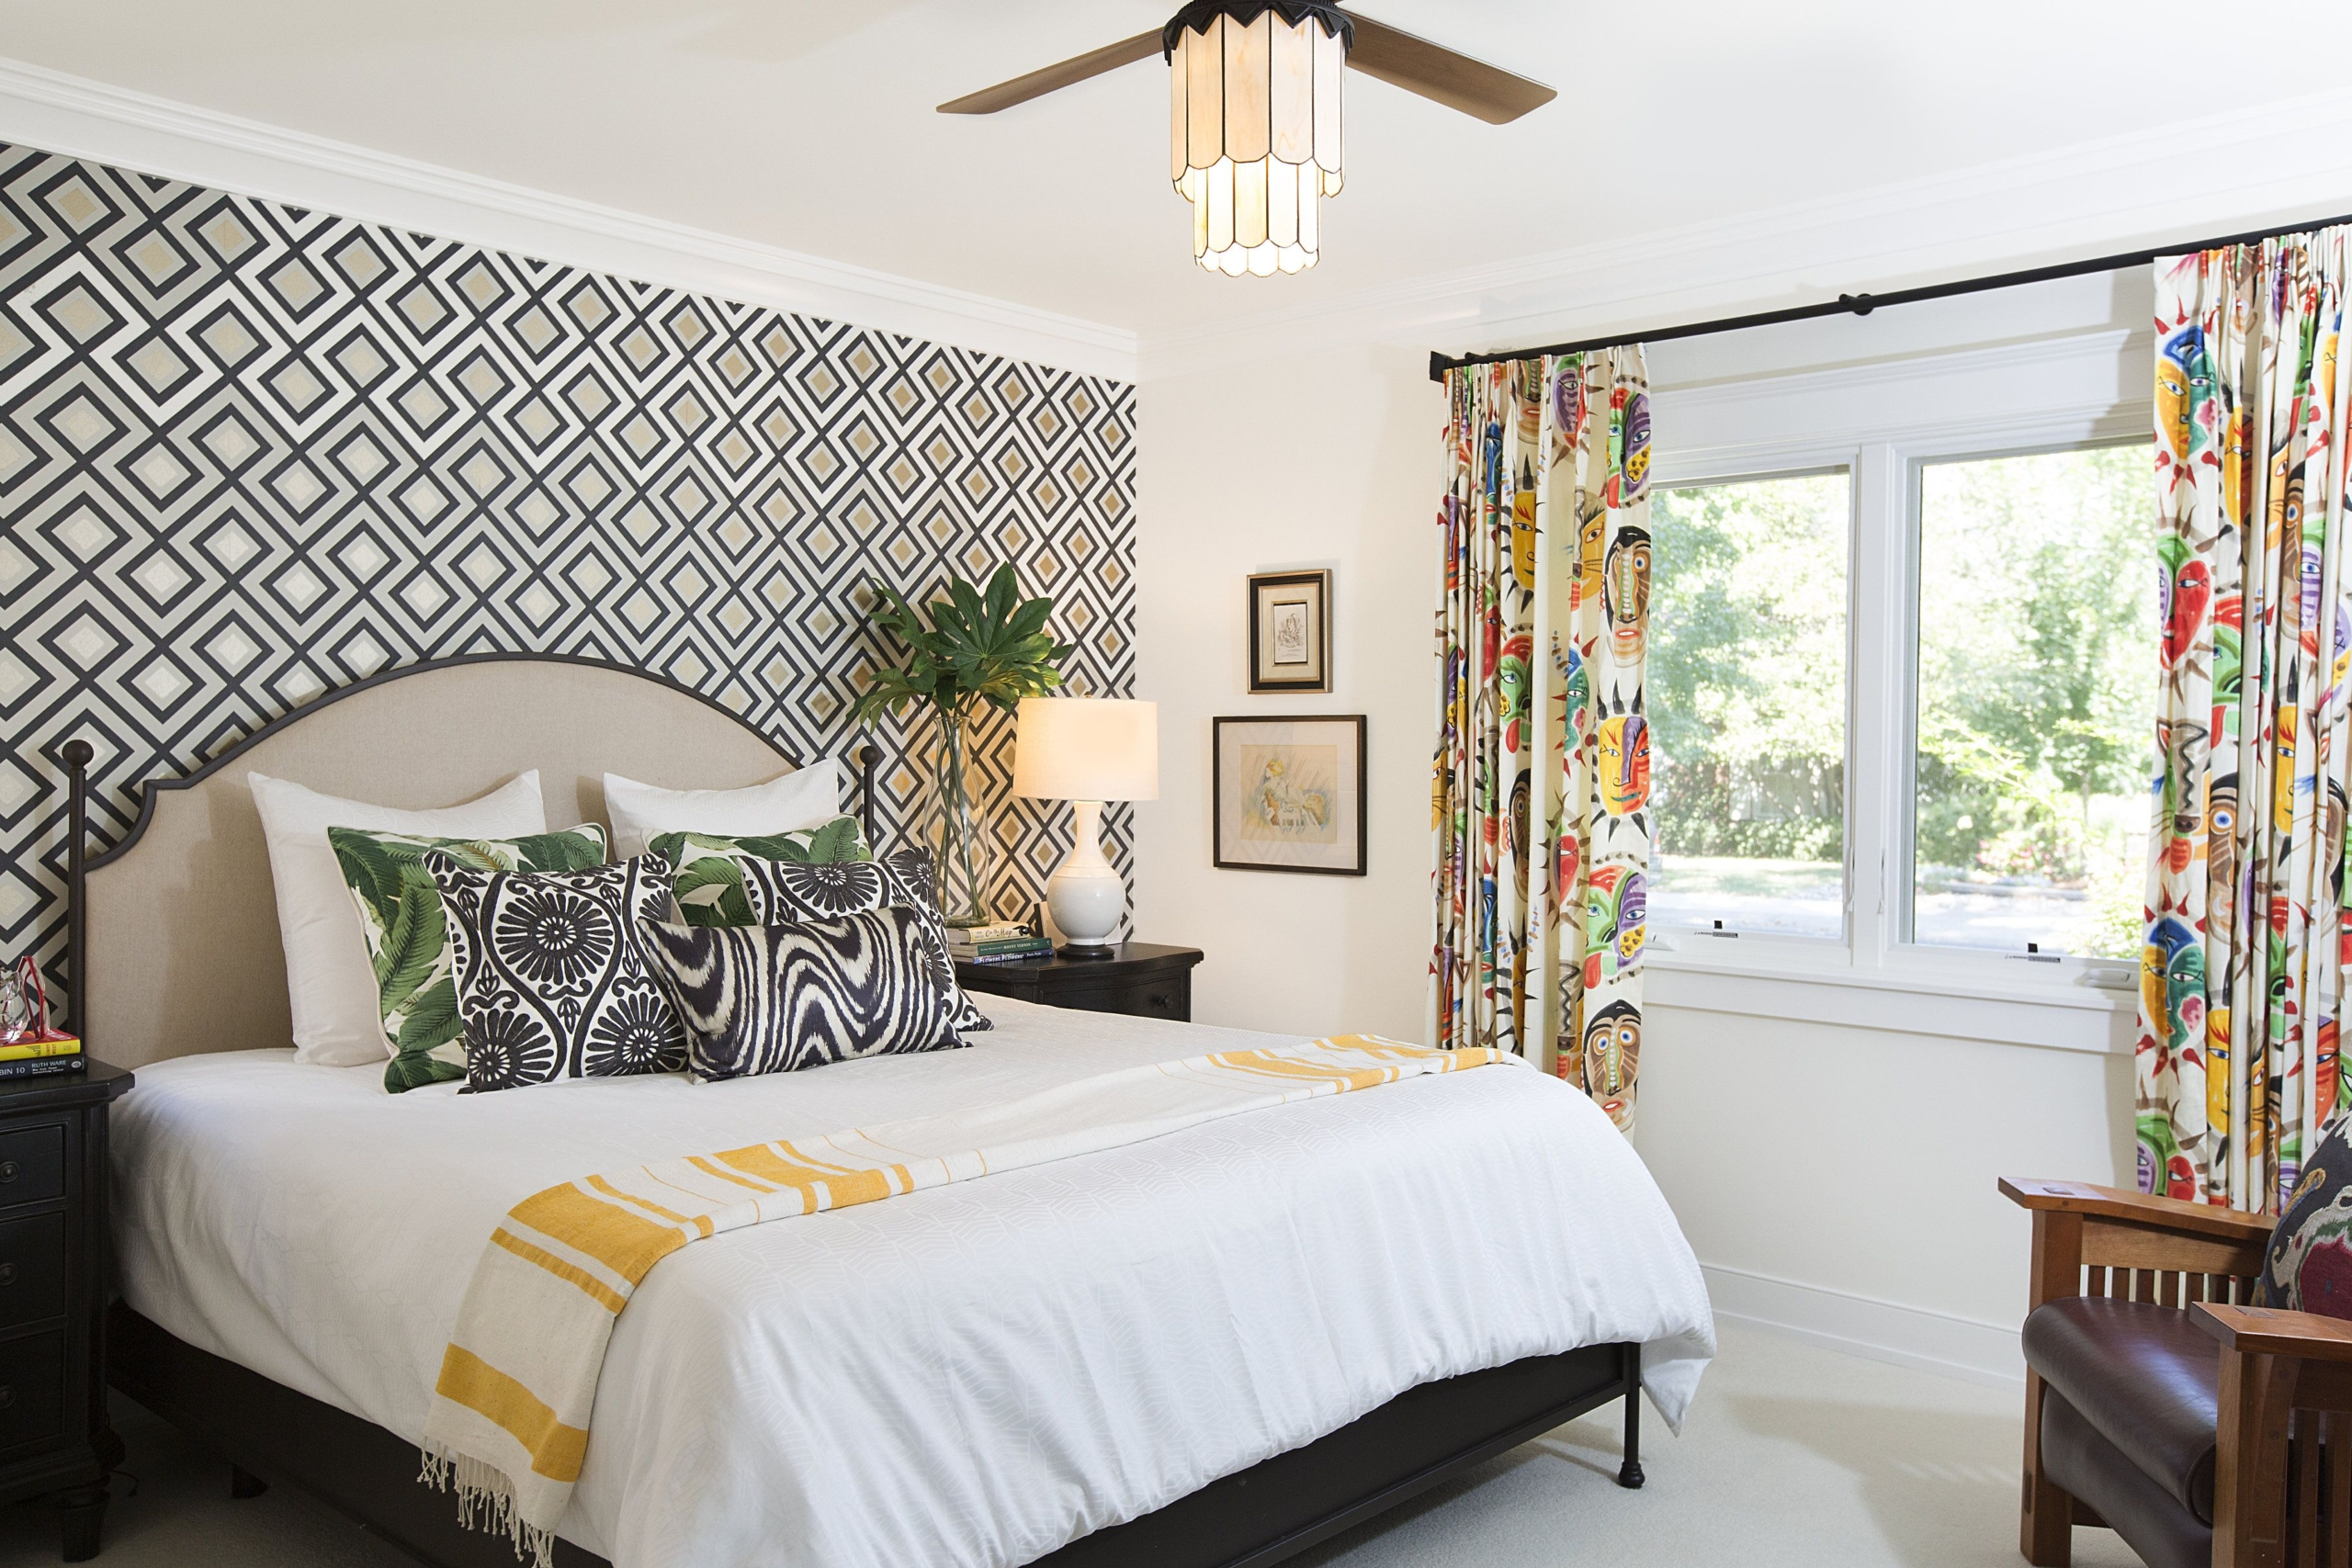 Using Wallpaper accent wall As a Statement in Your Home